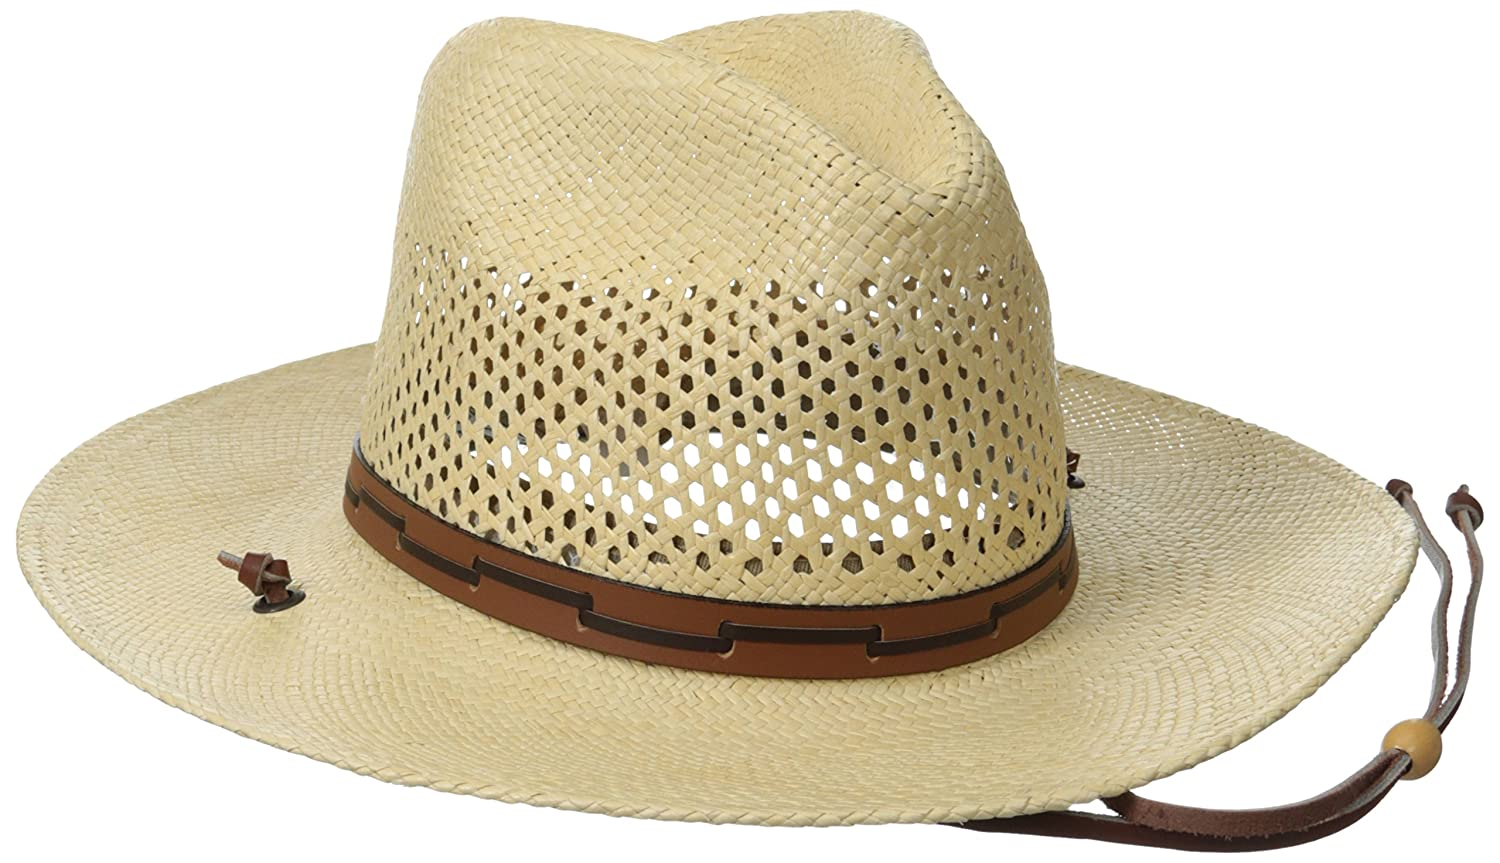 54627afe28899 Stetson Men s Stetson Airway Vented Panama Straw Hat at Amazon Men s  Clothing store